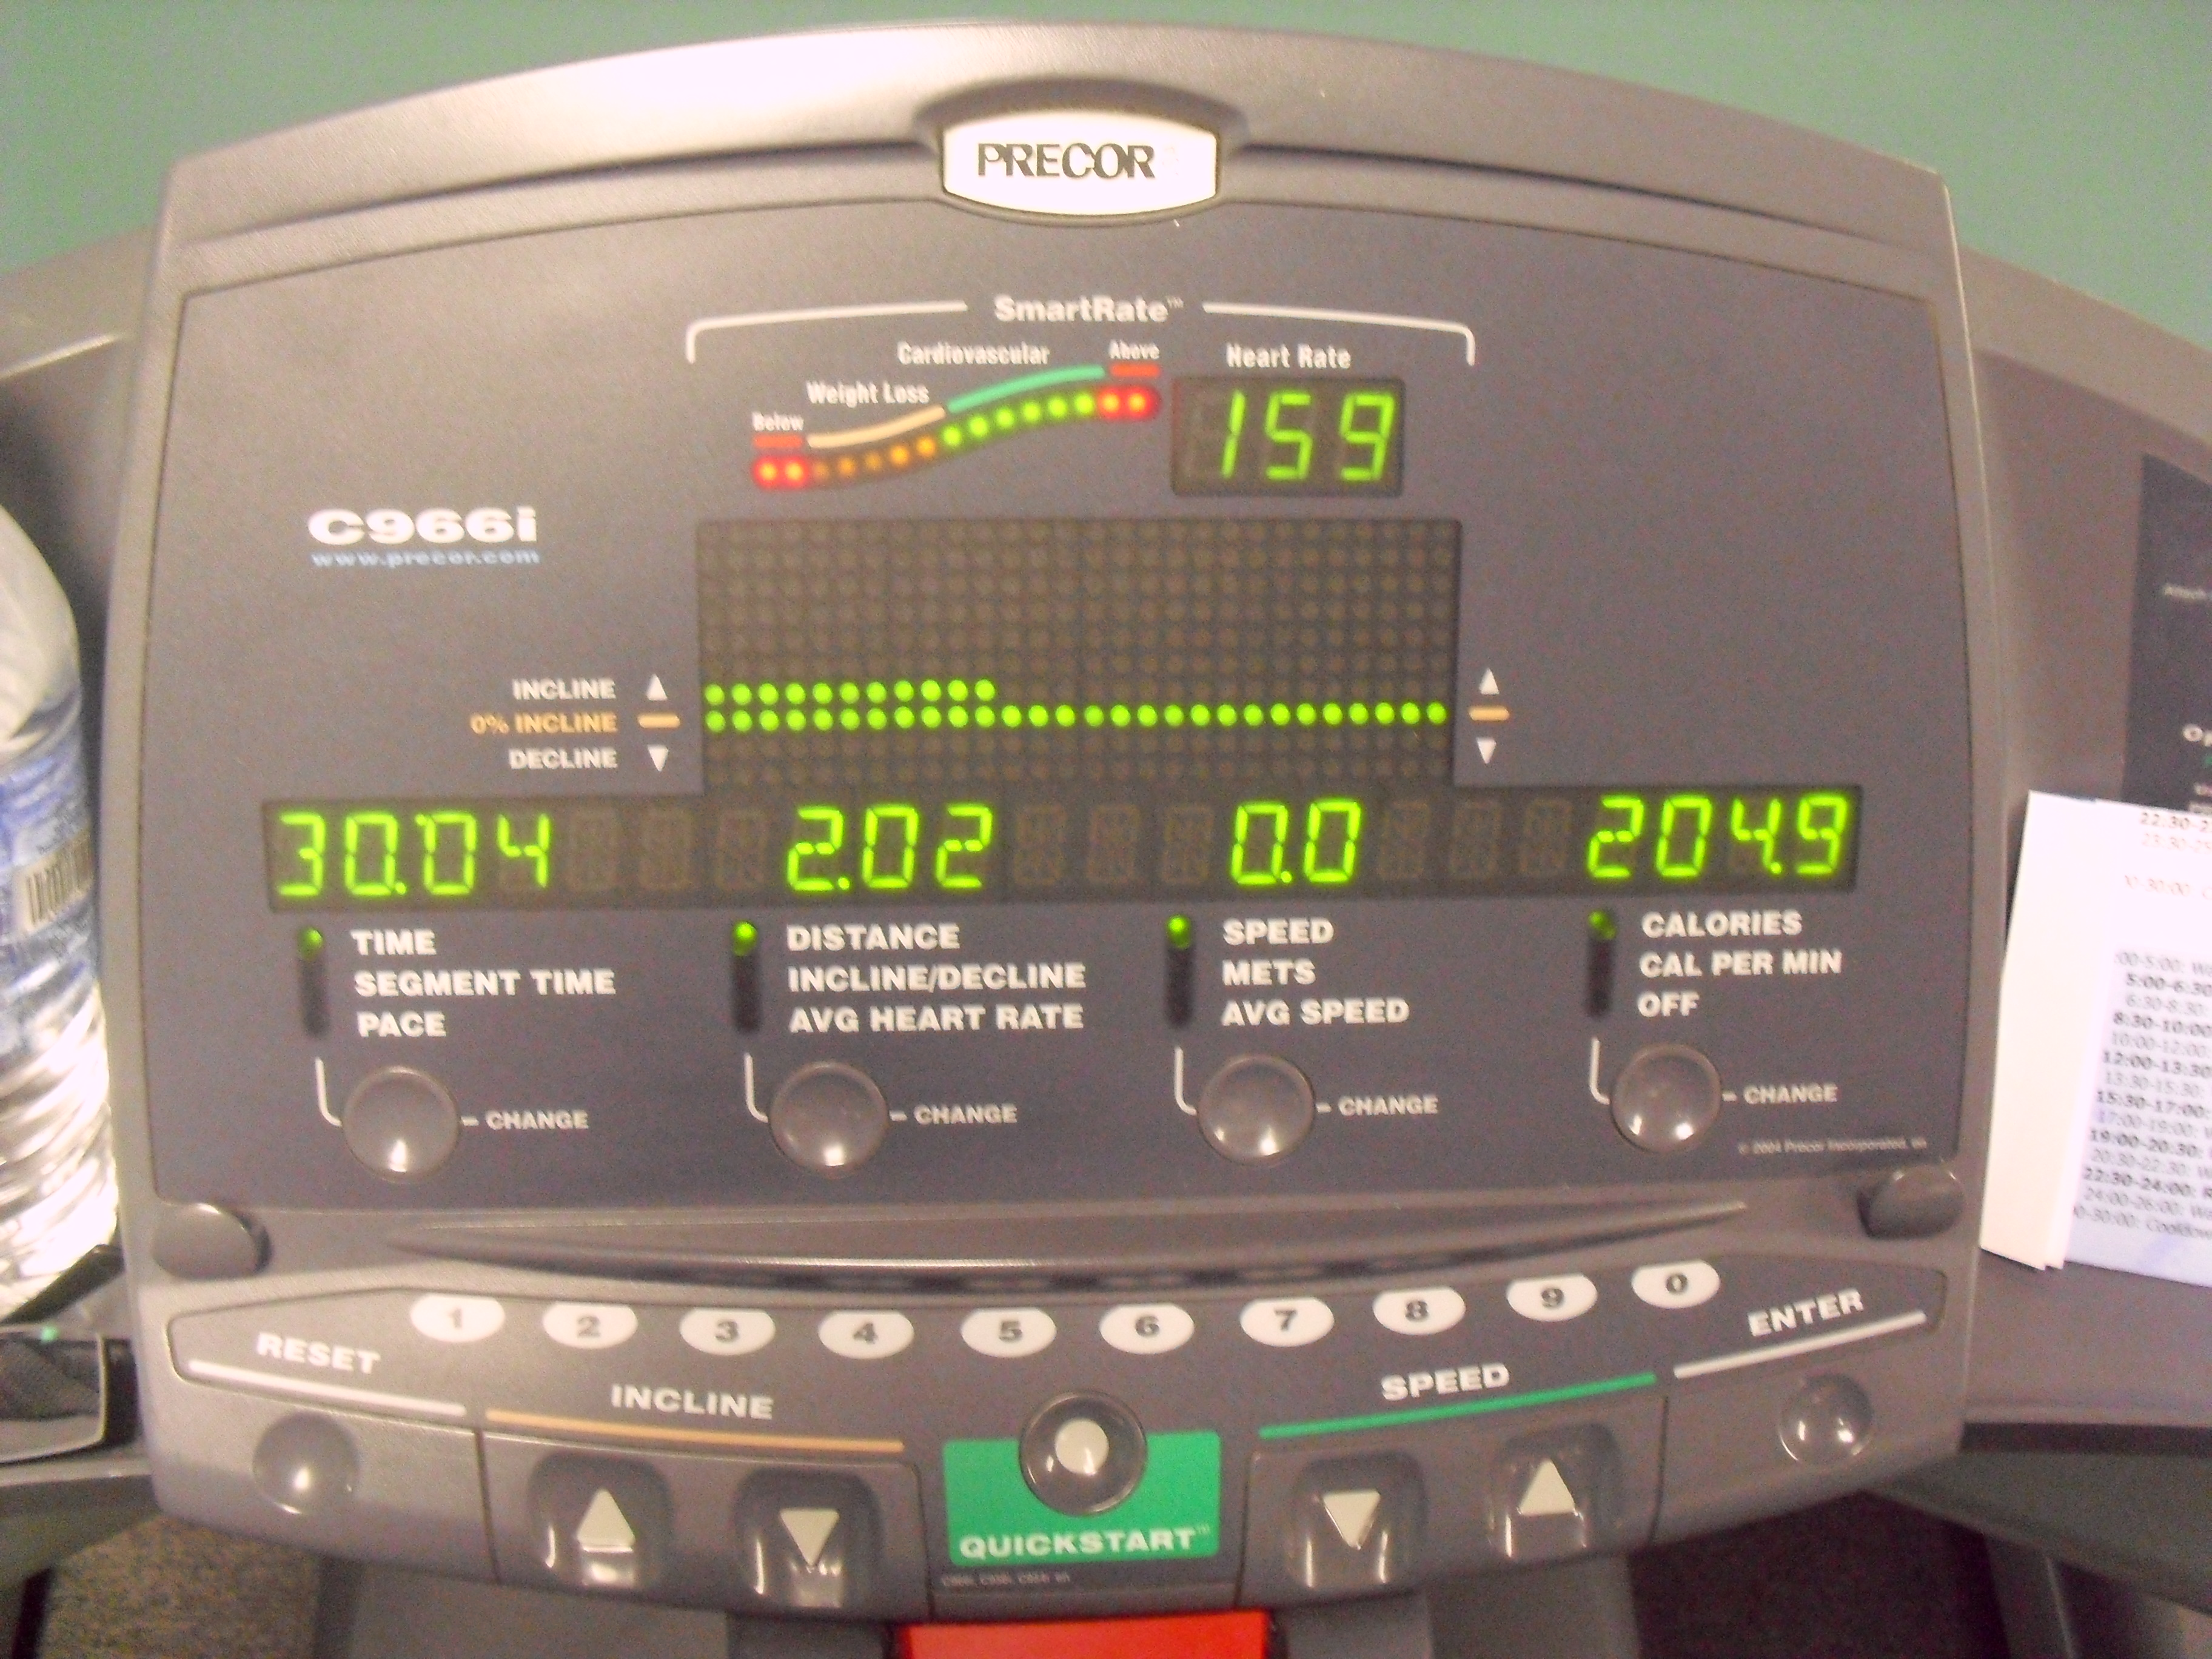 Couch to 5K - Treadmill